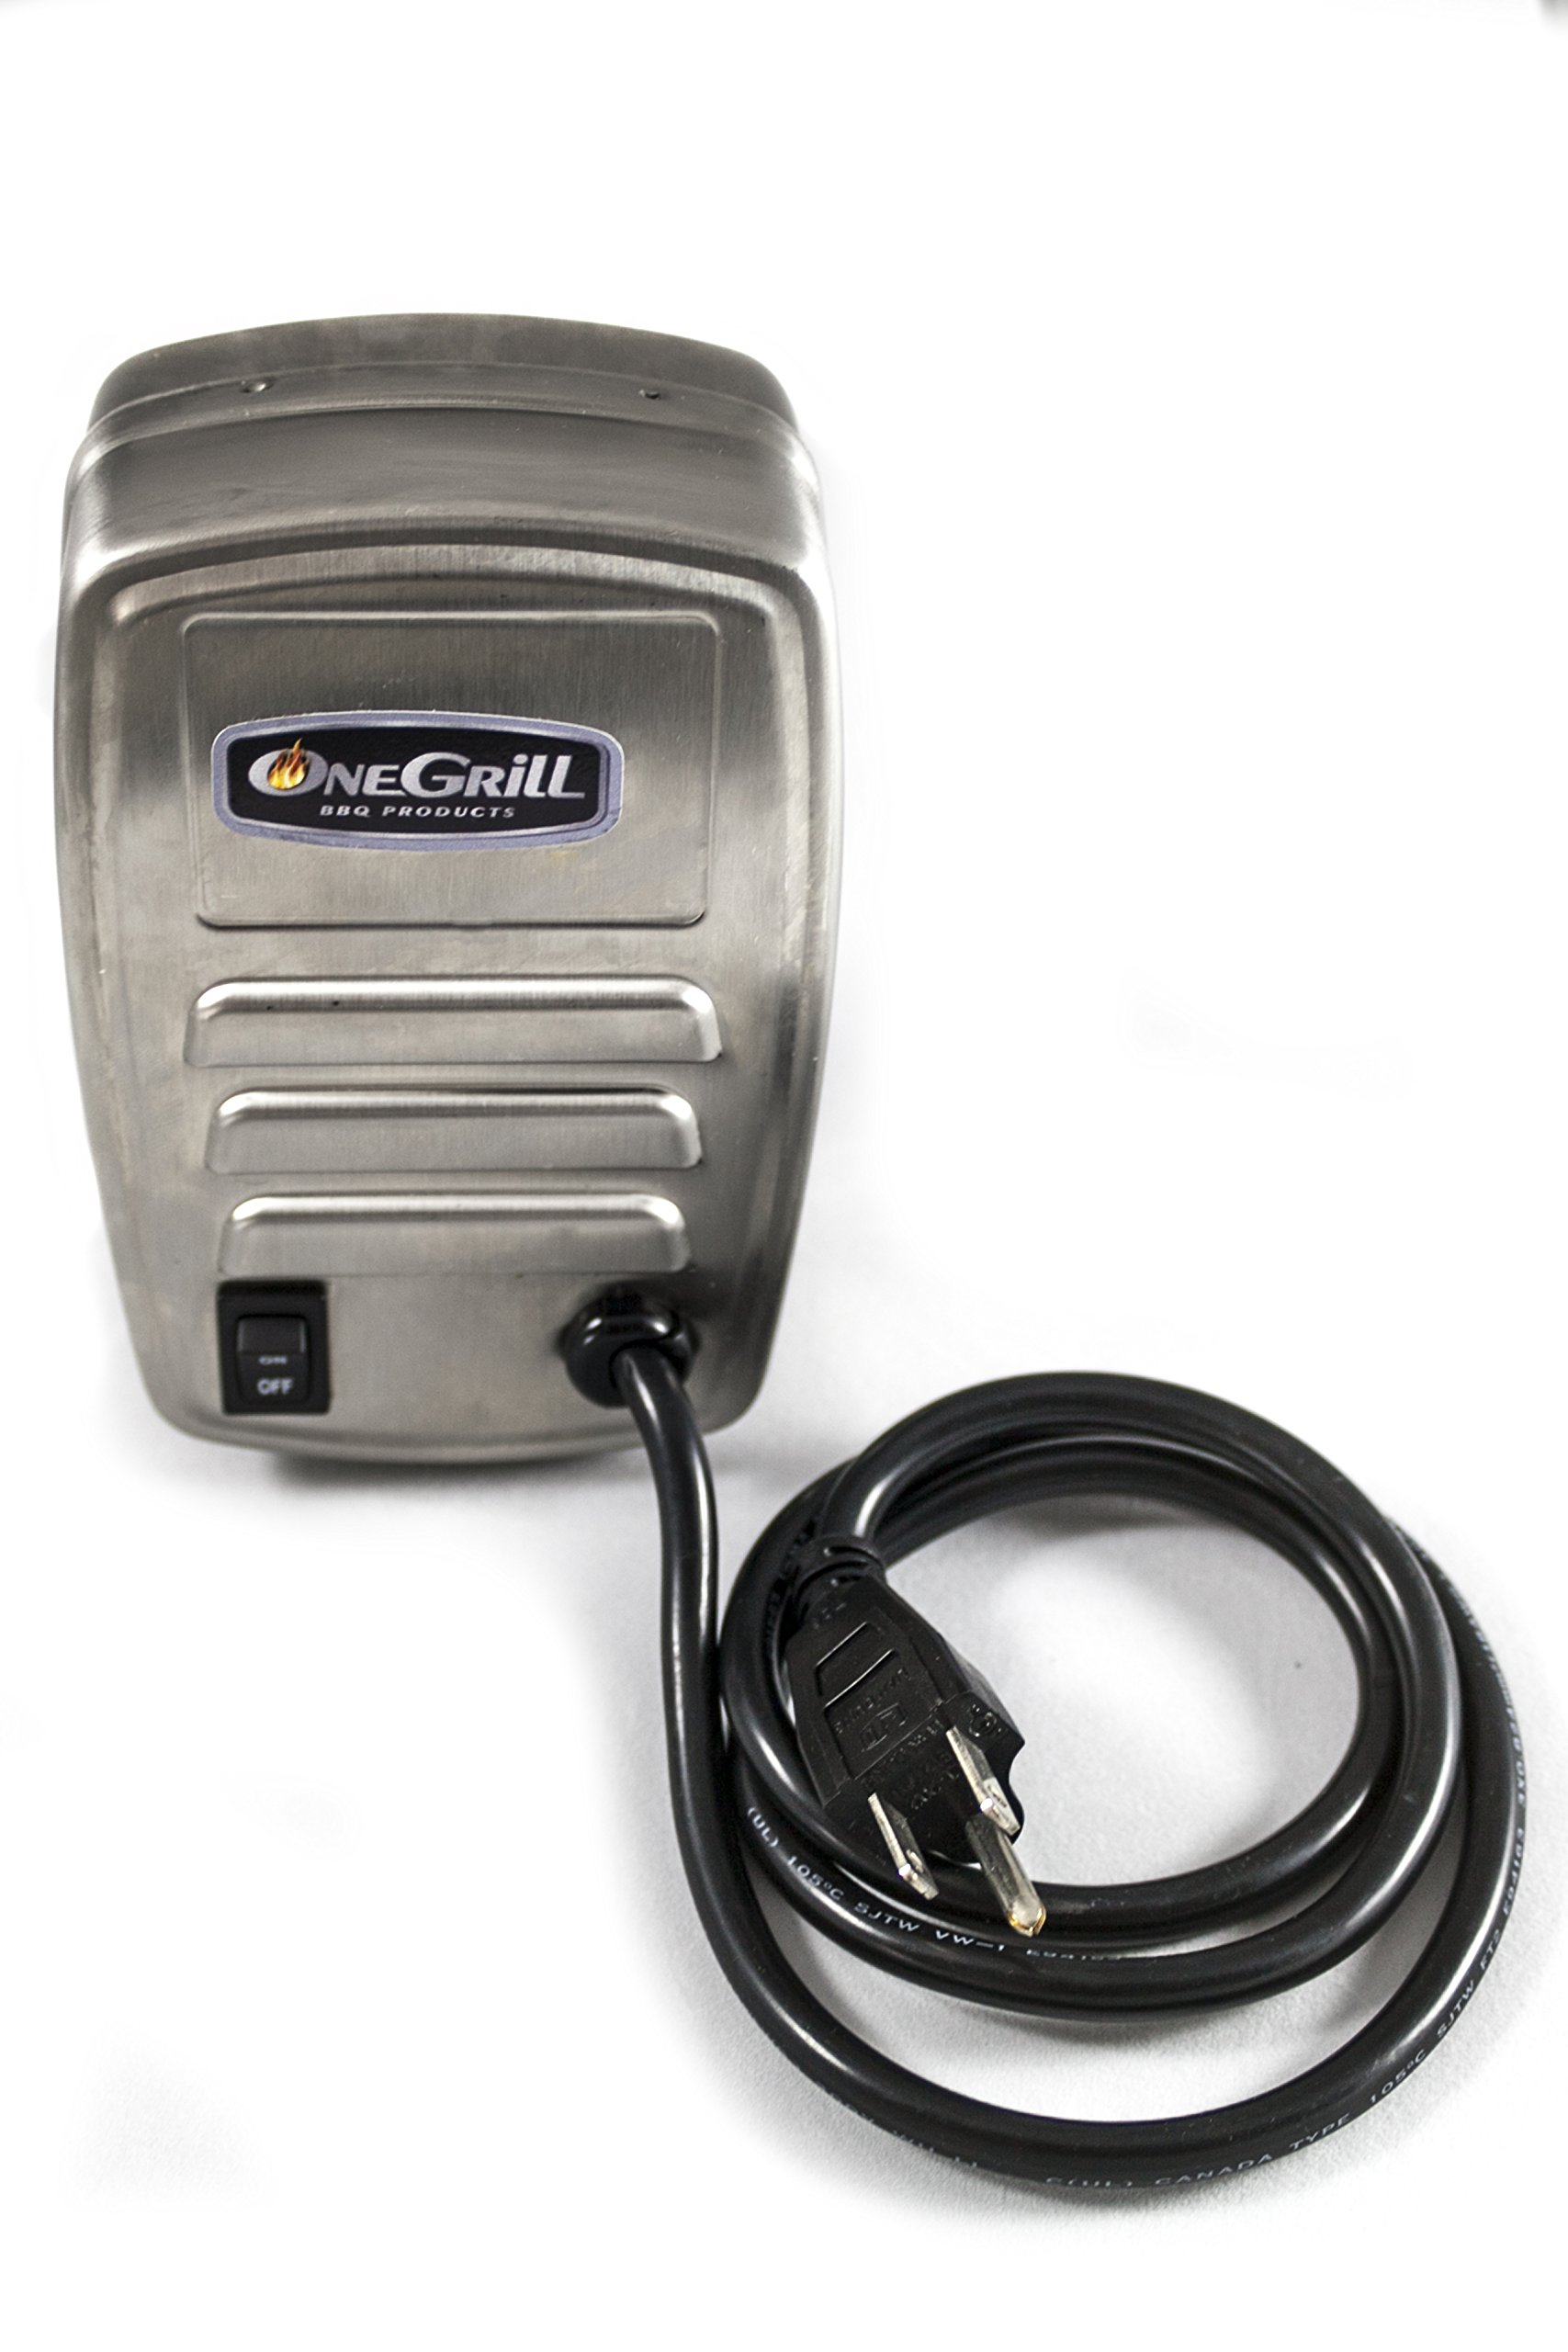 OneGrill Universal Replacement Upgrade Stainless Steel Grill Rotisserie Motor 13 watt 50 lb. Load